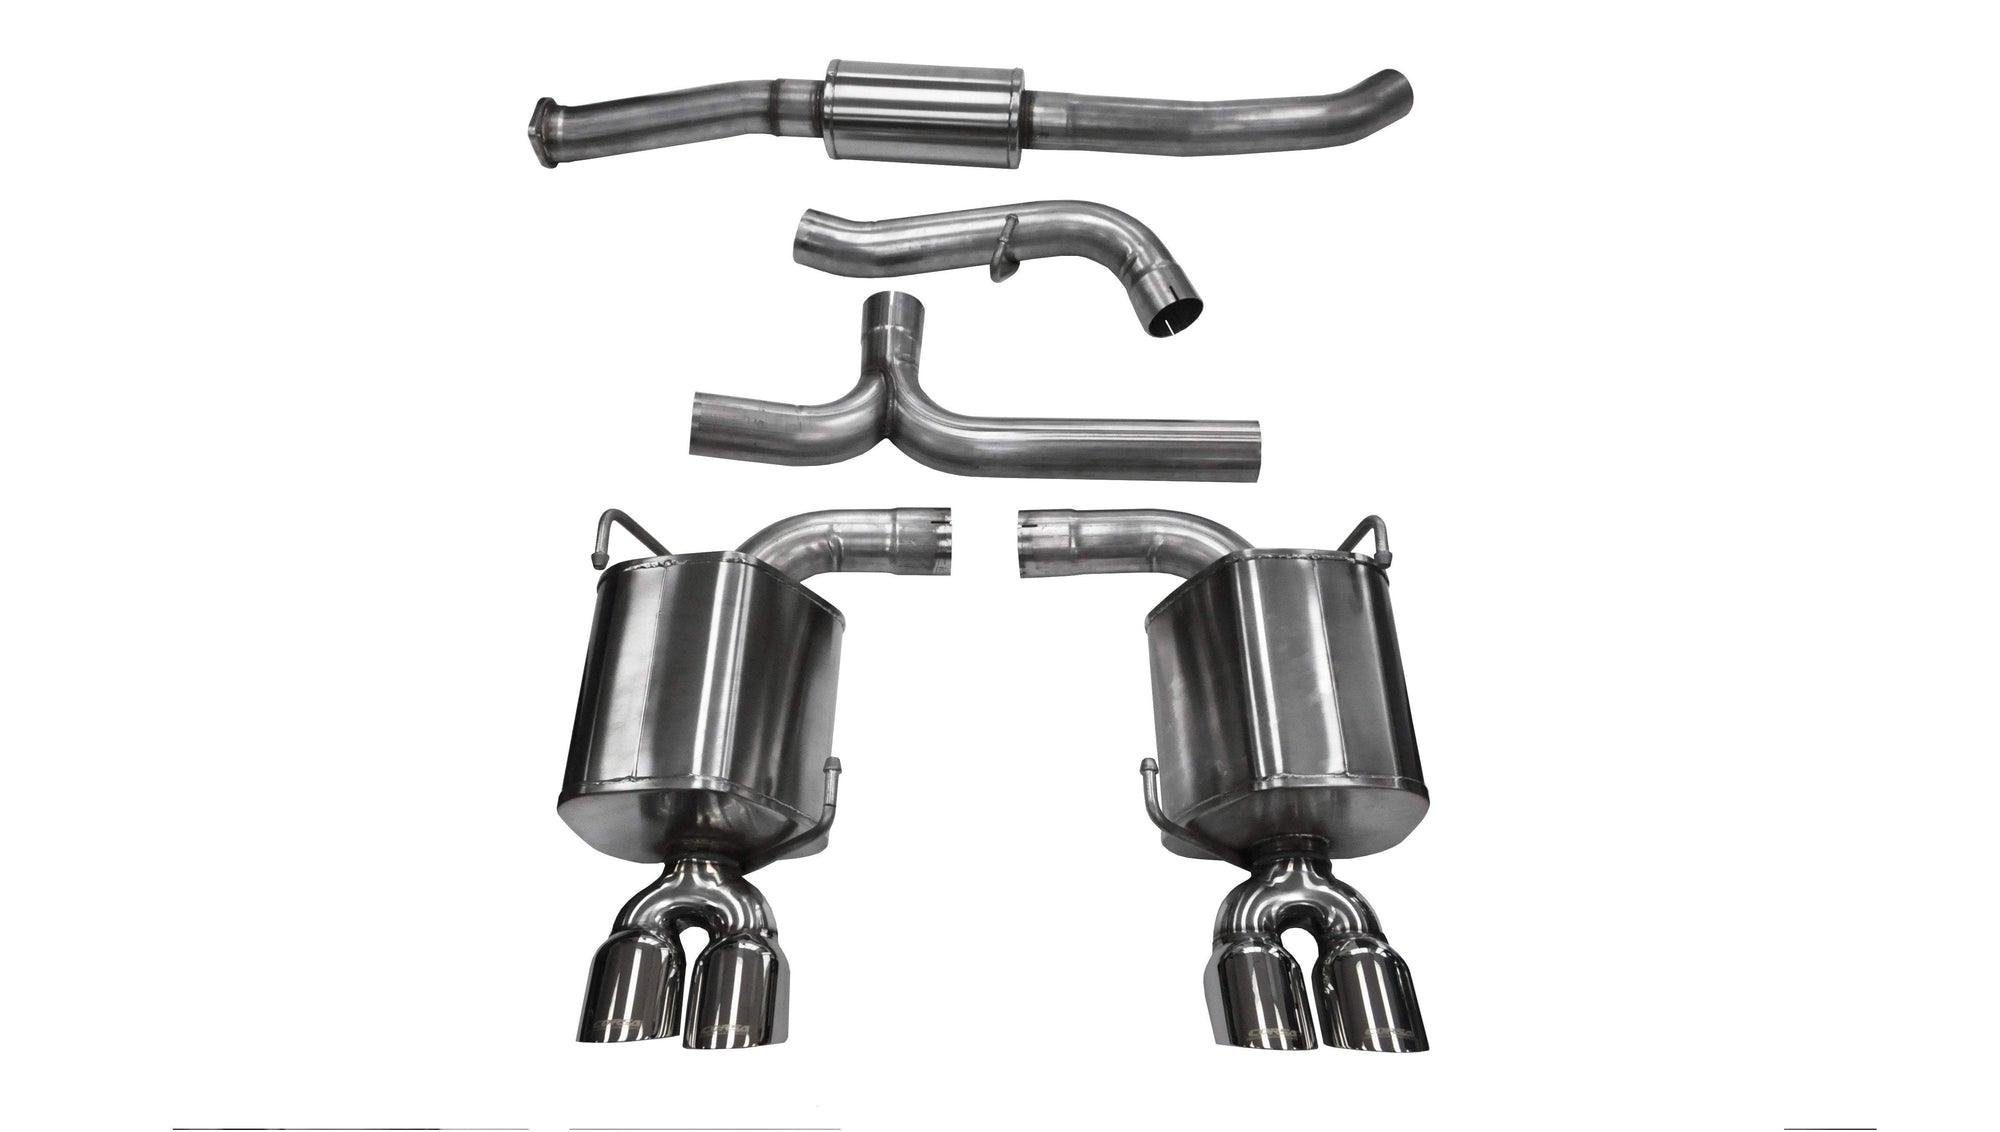 "CORSA PERFORMANCE Cat-Back Exhaust Polished / Sport / Dual Rear - Twin 3.5in 2011-2014 Subaru Impreza STI, WRX, 2.5L ,3.0"" Dual Rear Exit Catback Exhaust System with Twin 3.5"" Tips (14863) Sport Sound Level"